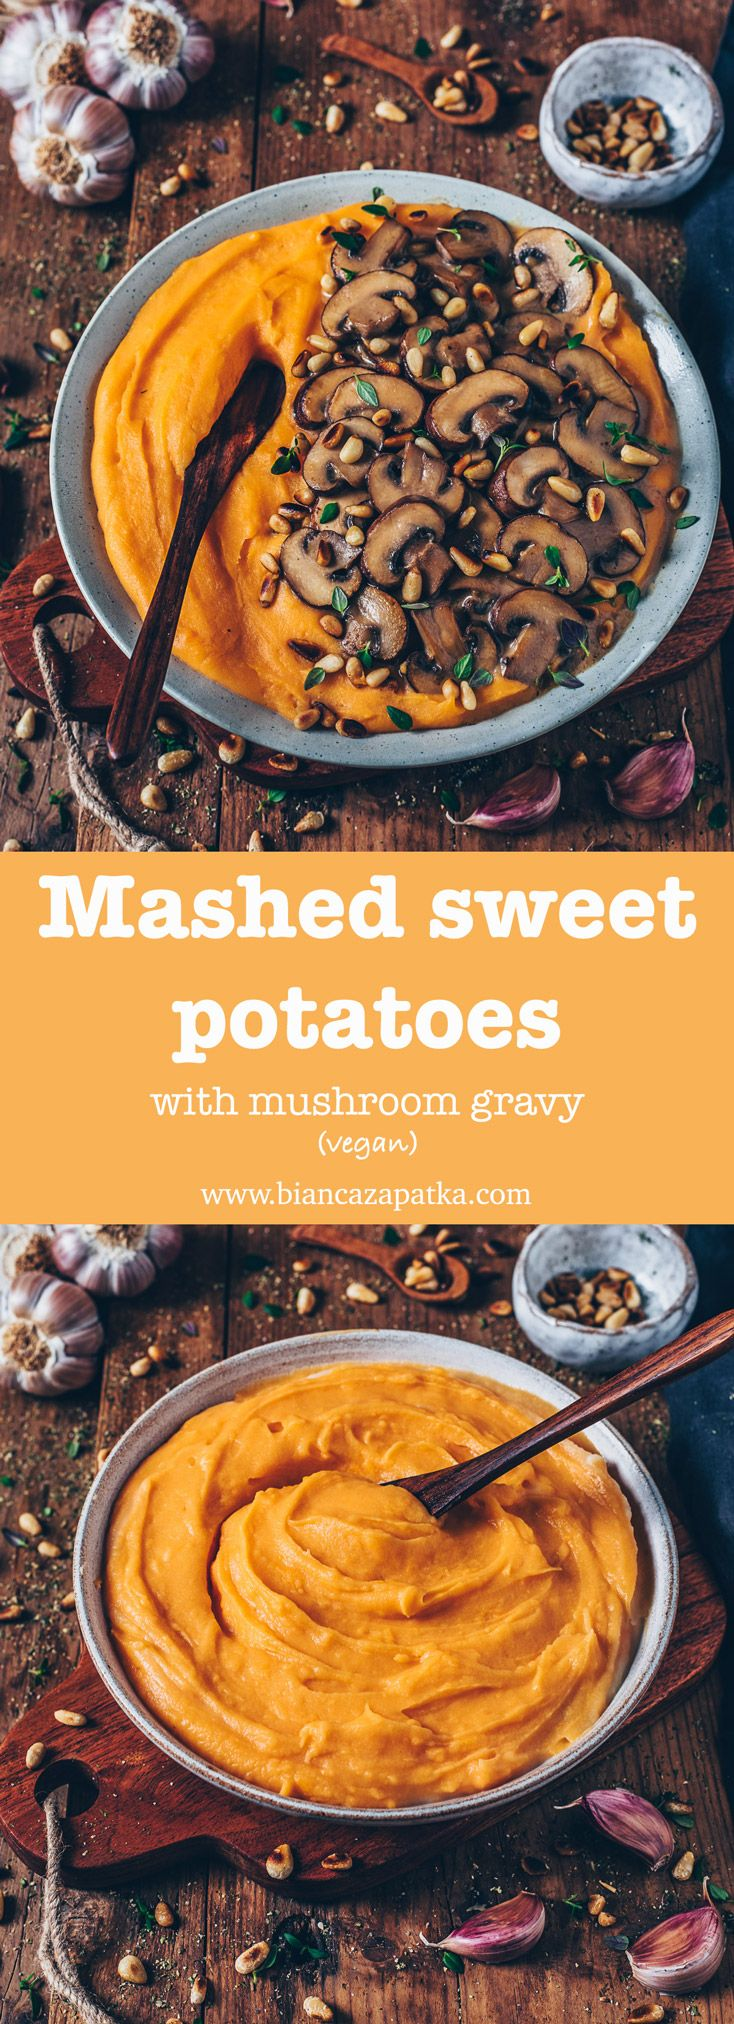 Mashed Sweet Potatoes with Mushroom Gravy (vegan)